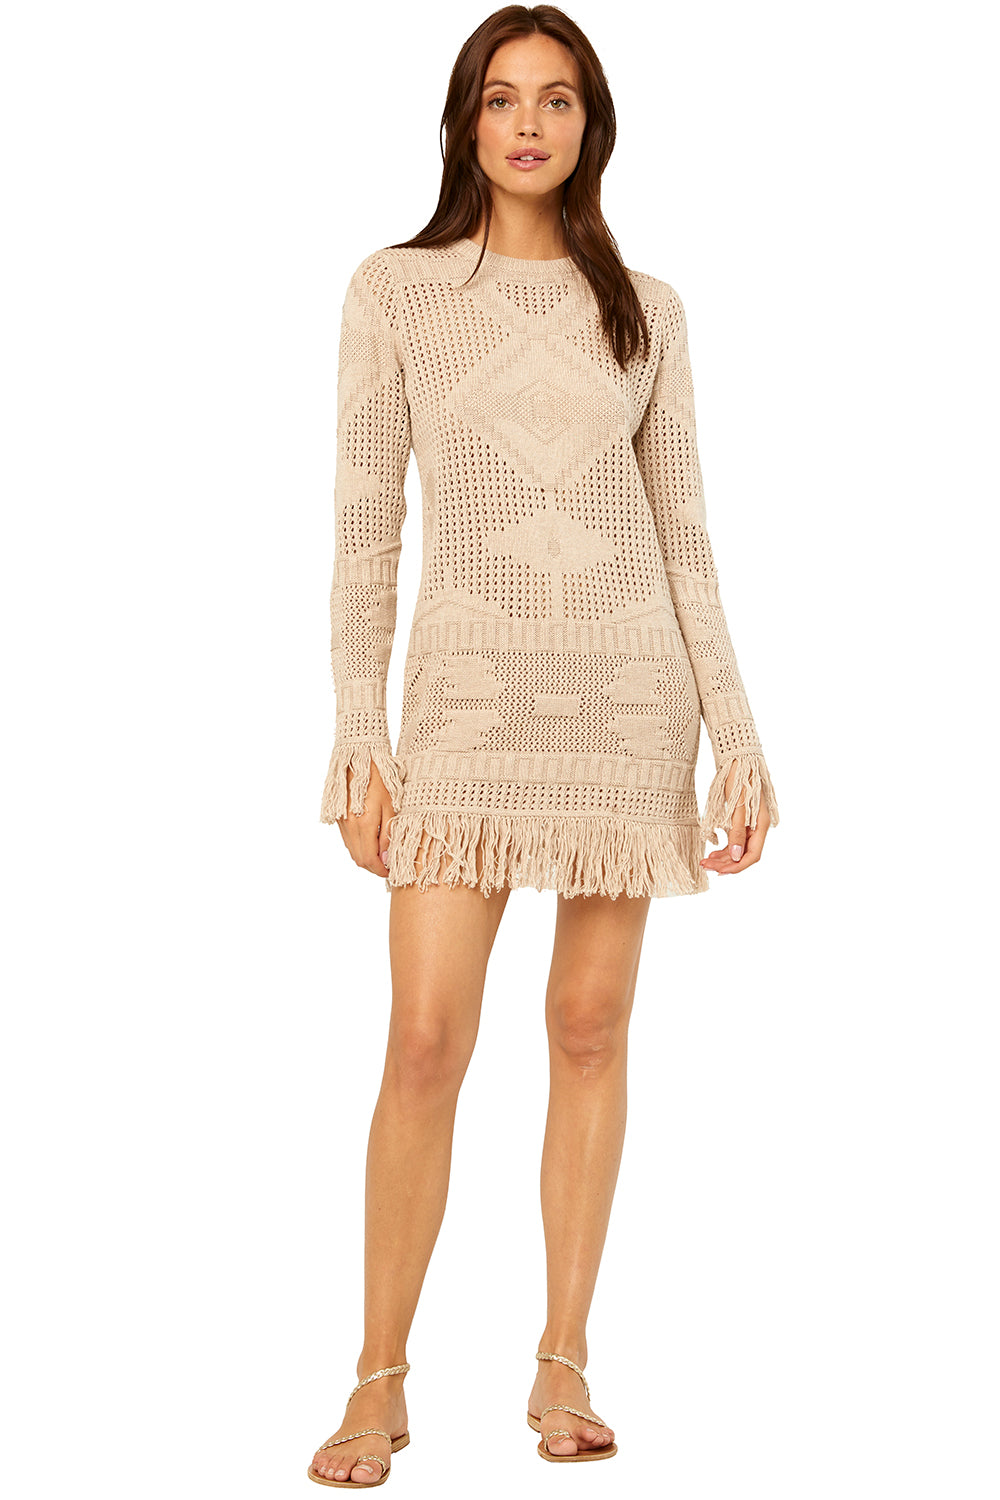 TERESE SWEATER DRESS - MISA Los Angeles